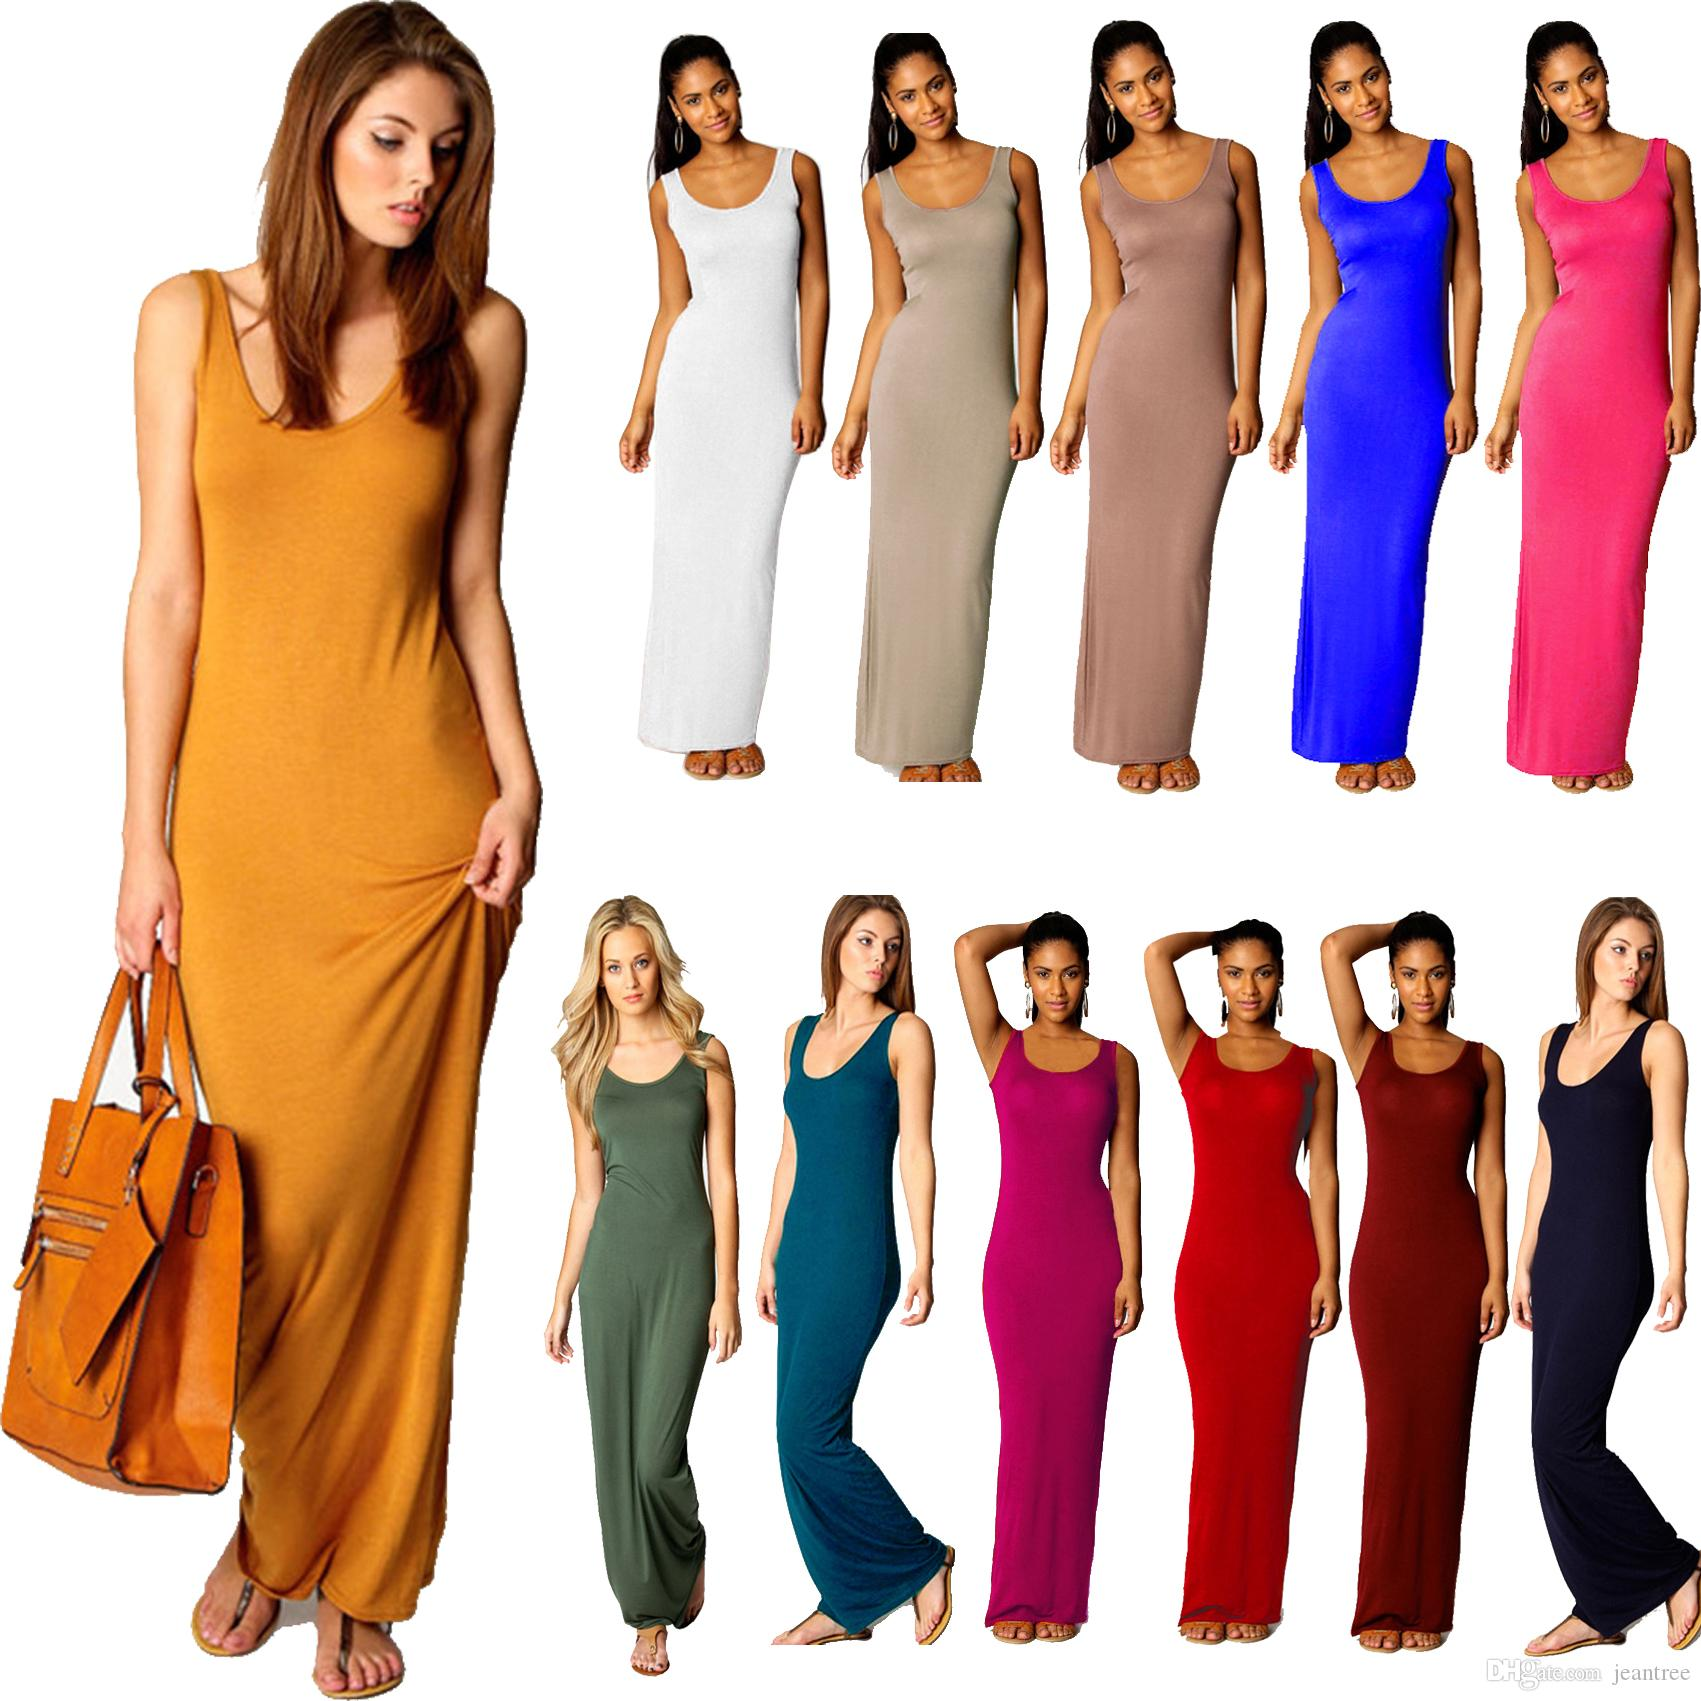 e7d482c8a5 Woman Dresses Ladies Jersey Long Summer Vest Racer Muscle Back Maxi Dress  Scoop Neck Women Clothes#20161206 2 Drop Shipping Casual Dress Chiffon  Dresses ...